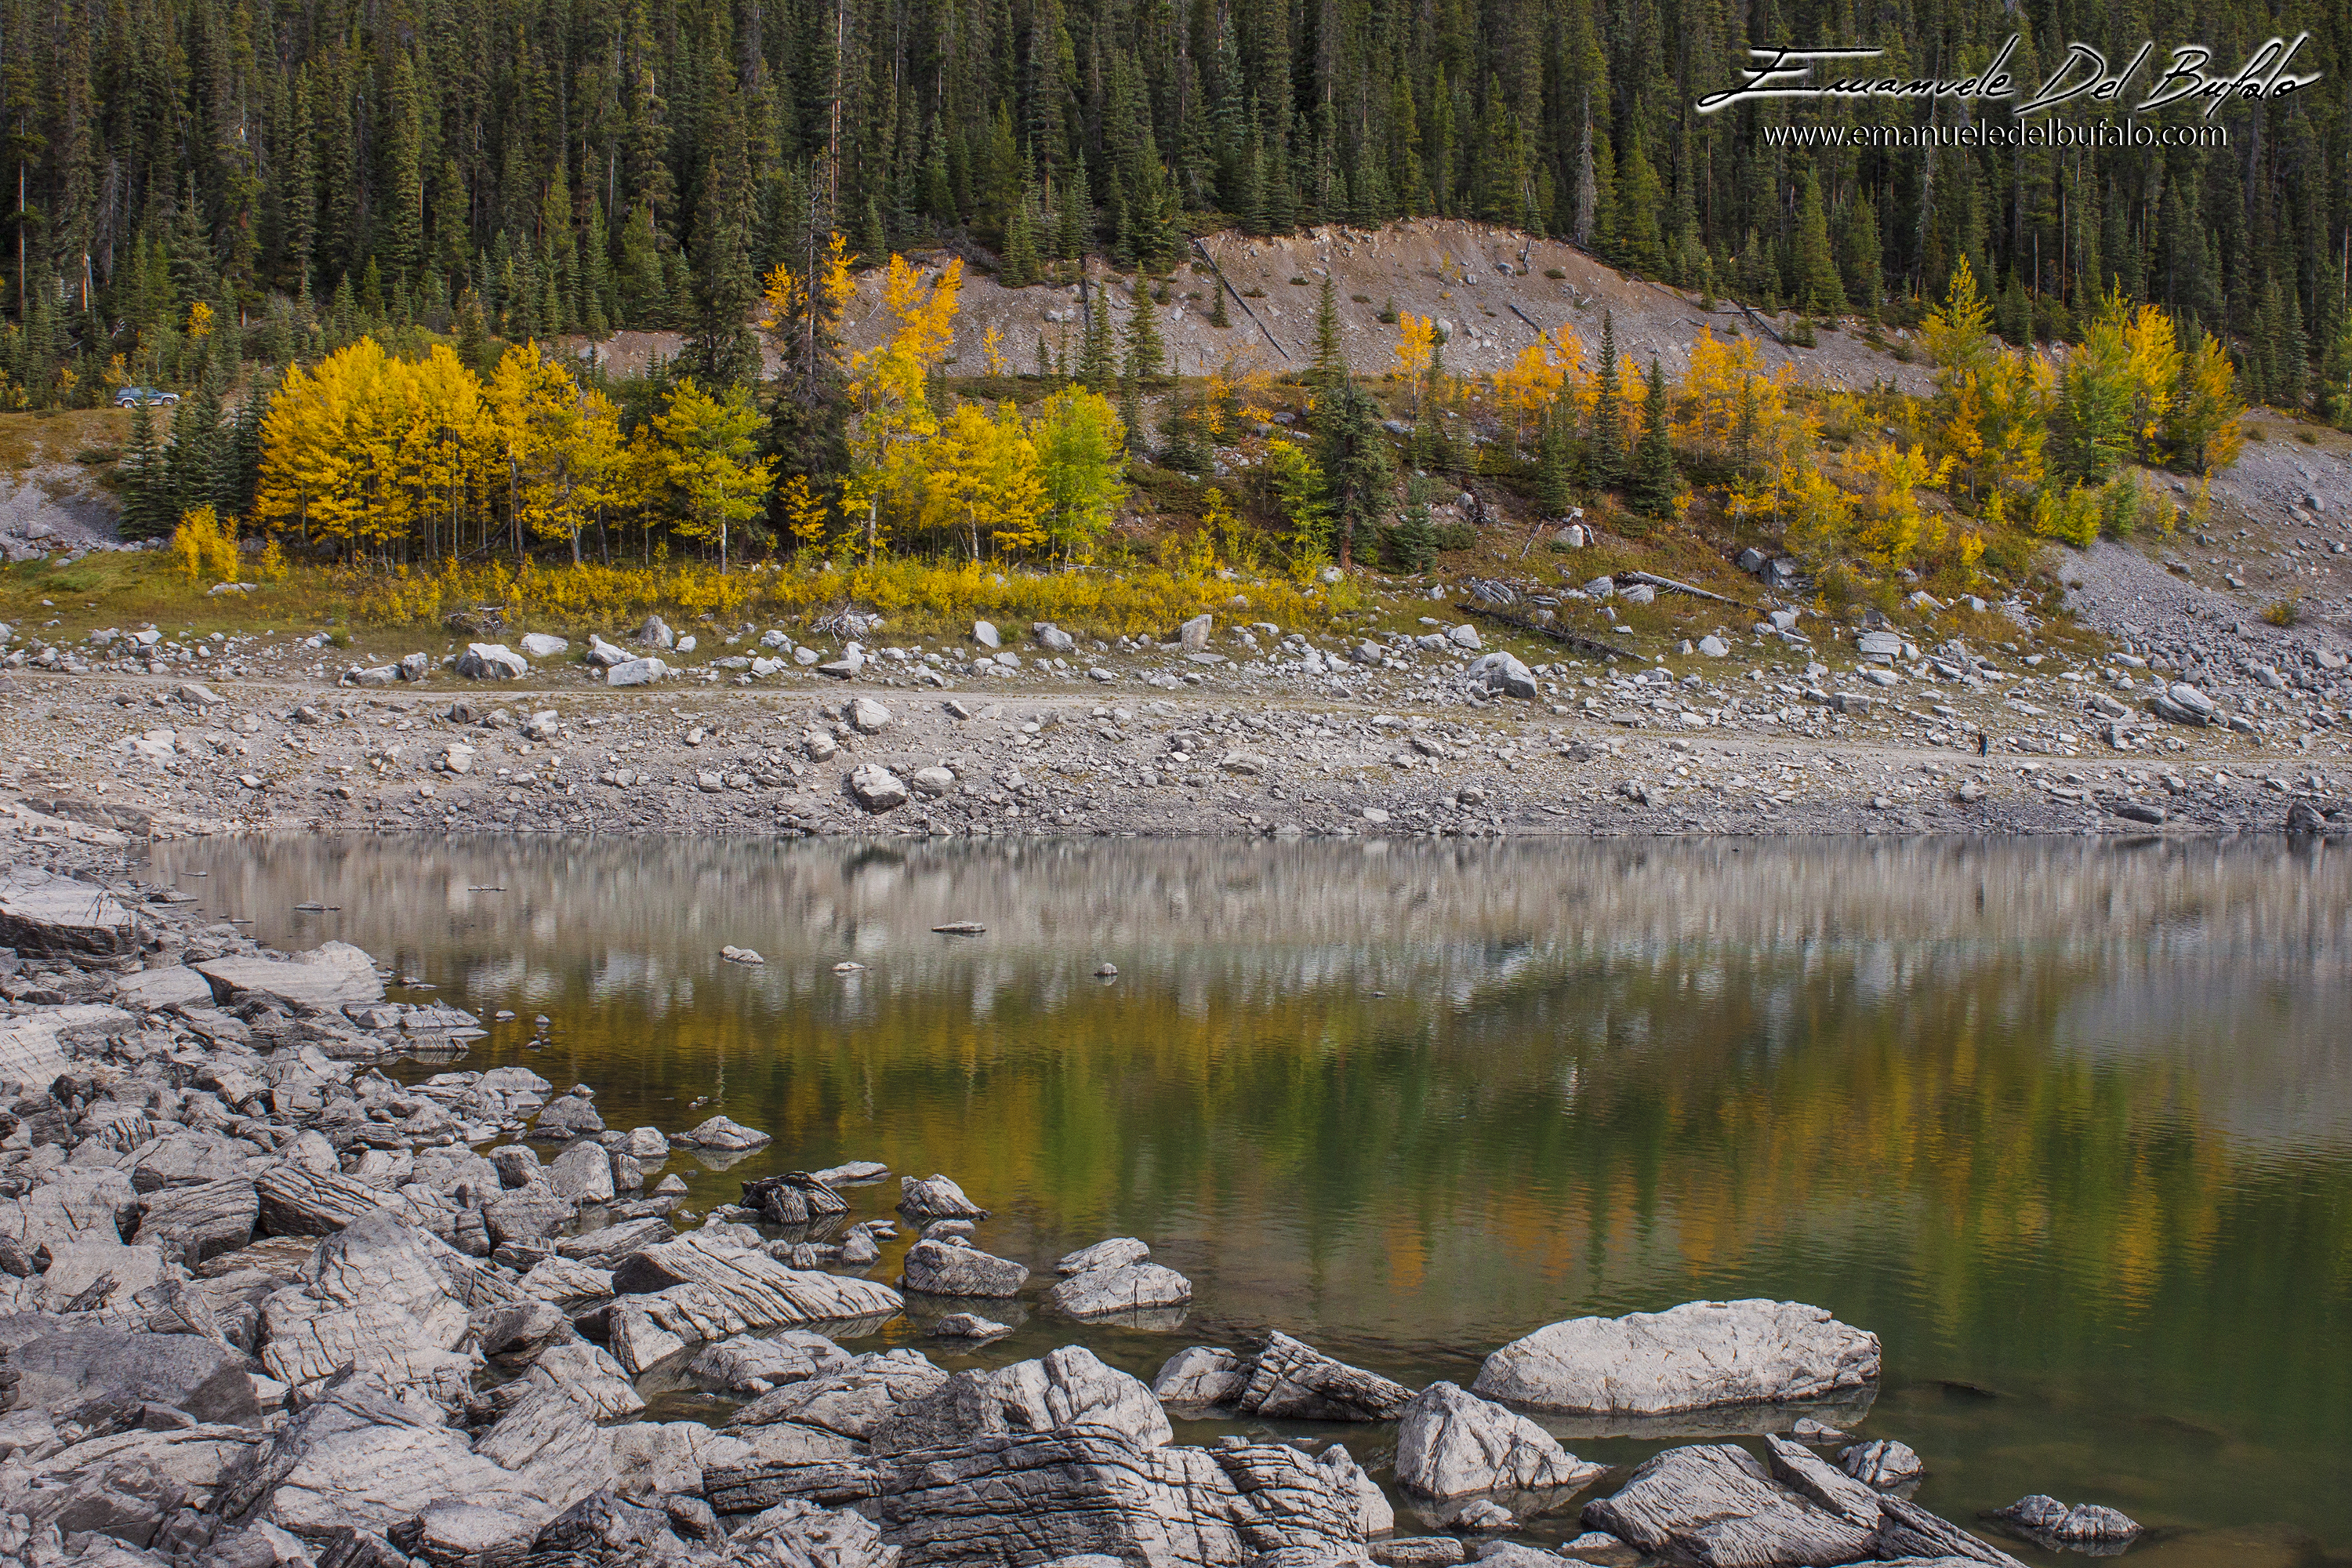 www.emanueledelbufalo.com #canada #road_trip #north #bc #alberta #autumn #yellow